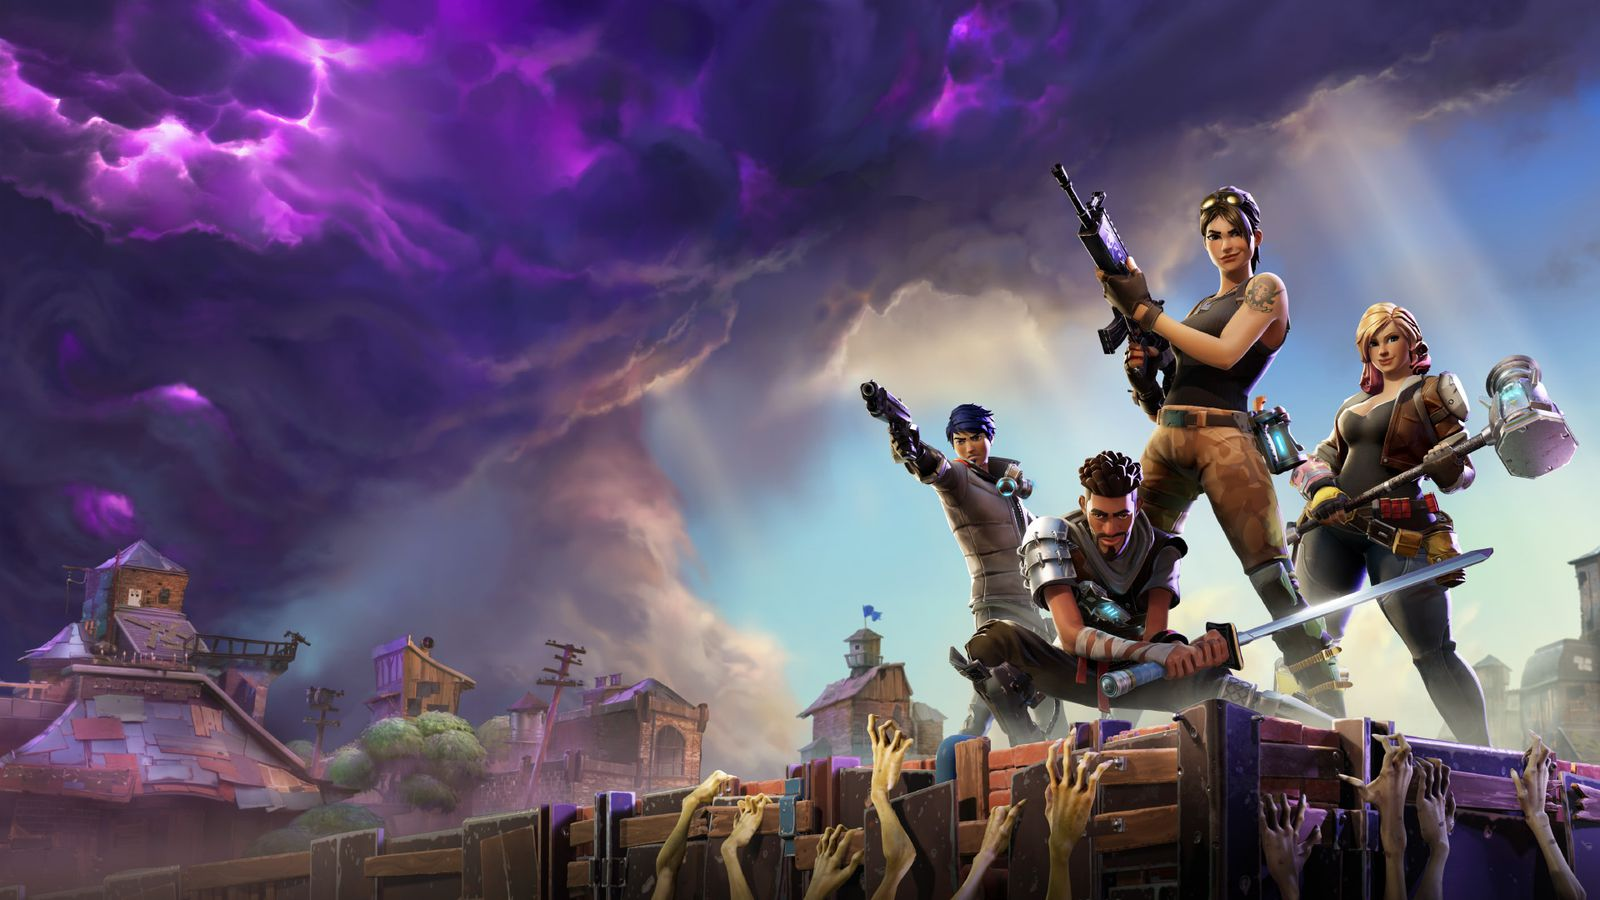 Fortnite How To Play Cross Platform Xbox Fortnite Gets Cross Platform Play Between Ps4 And Xbox One Reports